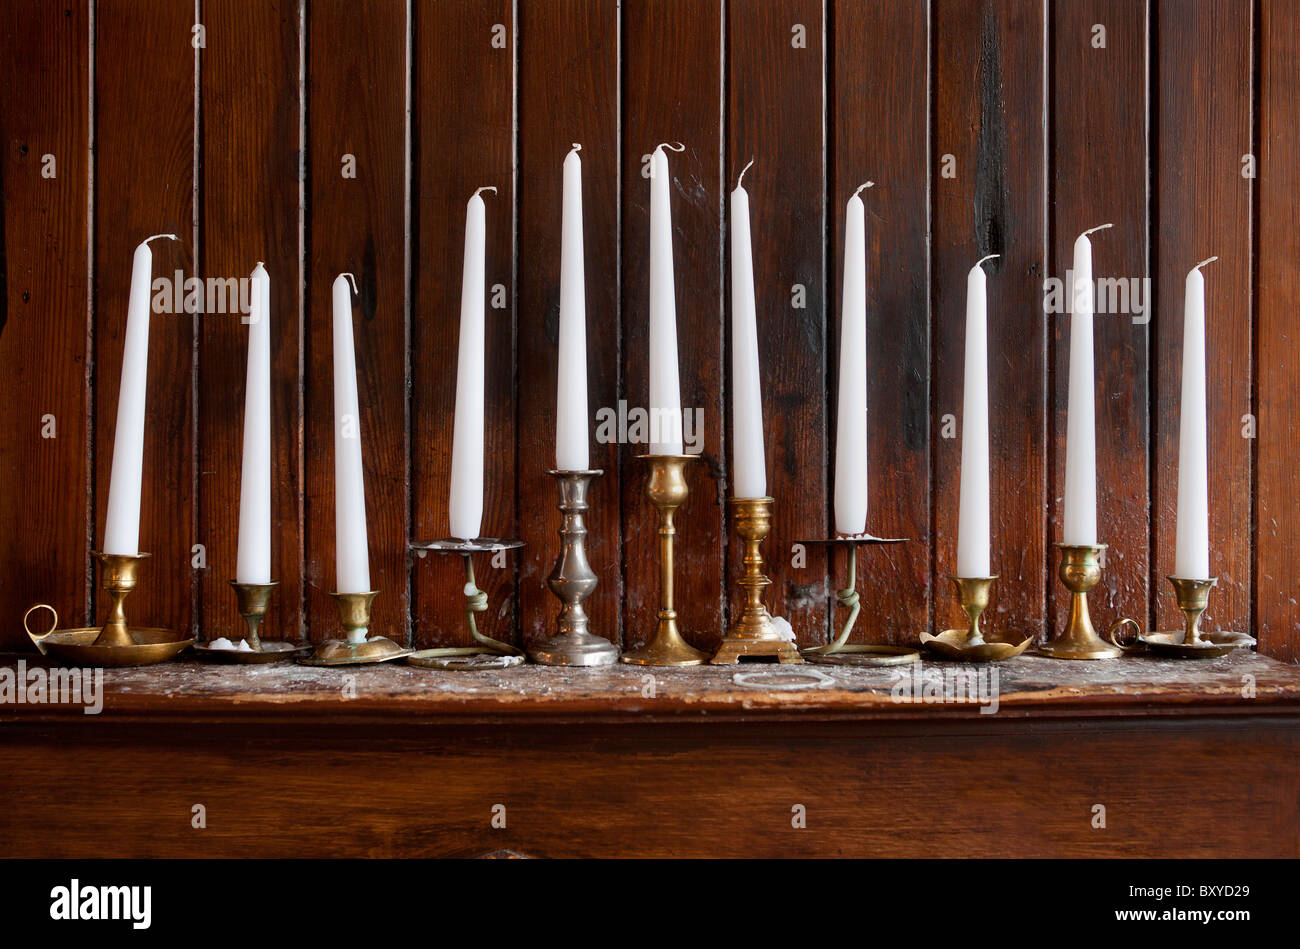 Row of Candles in candlestick holders above fireplace - Stock Image